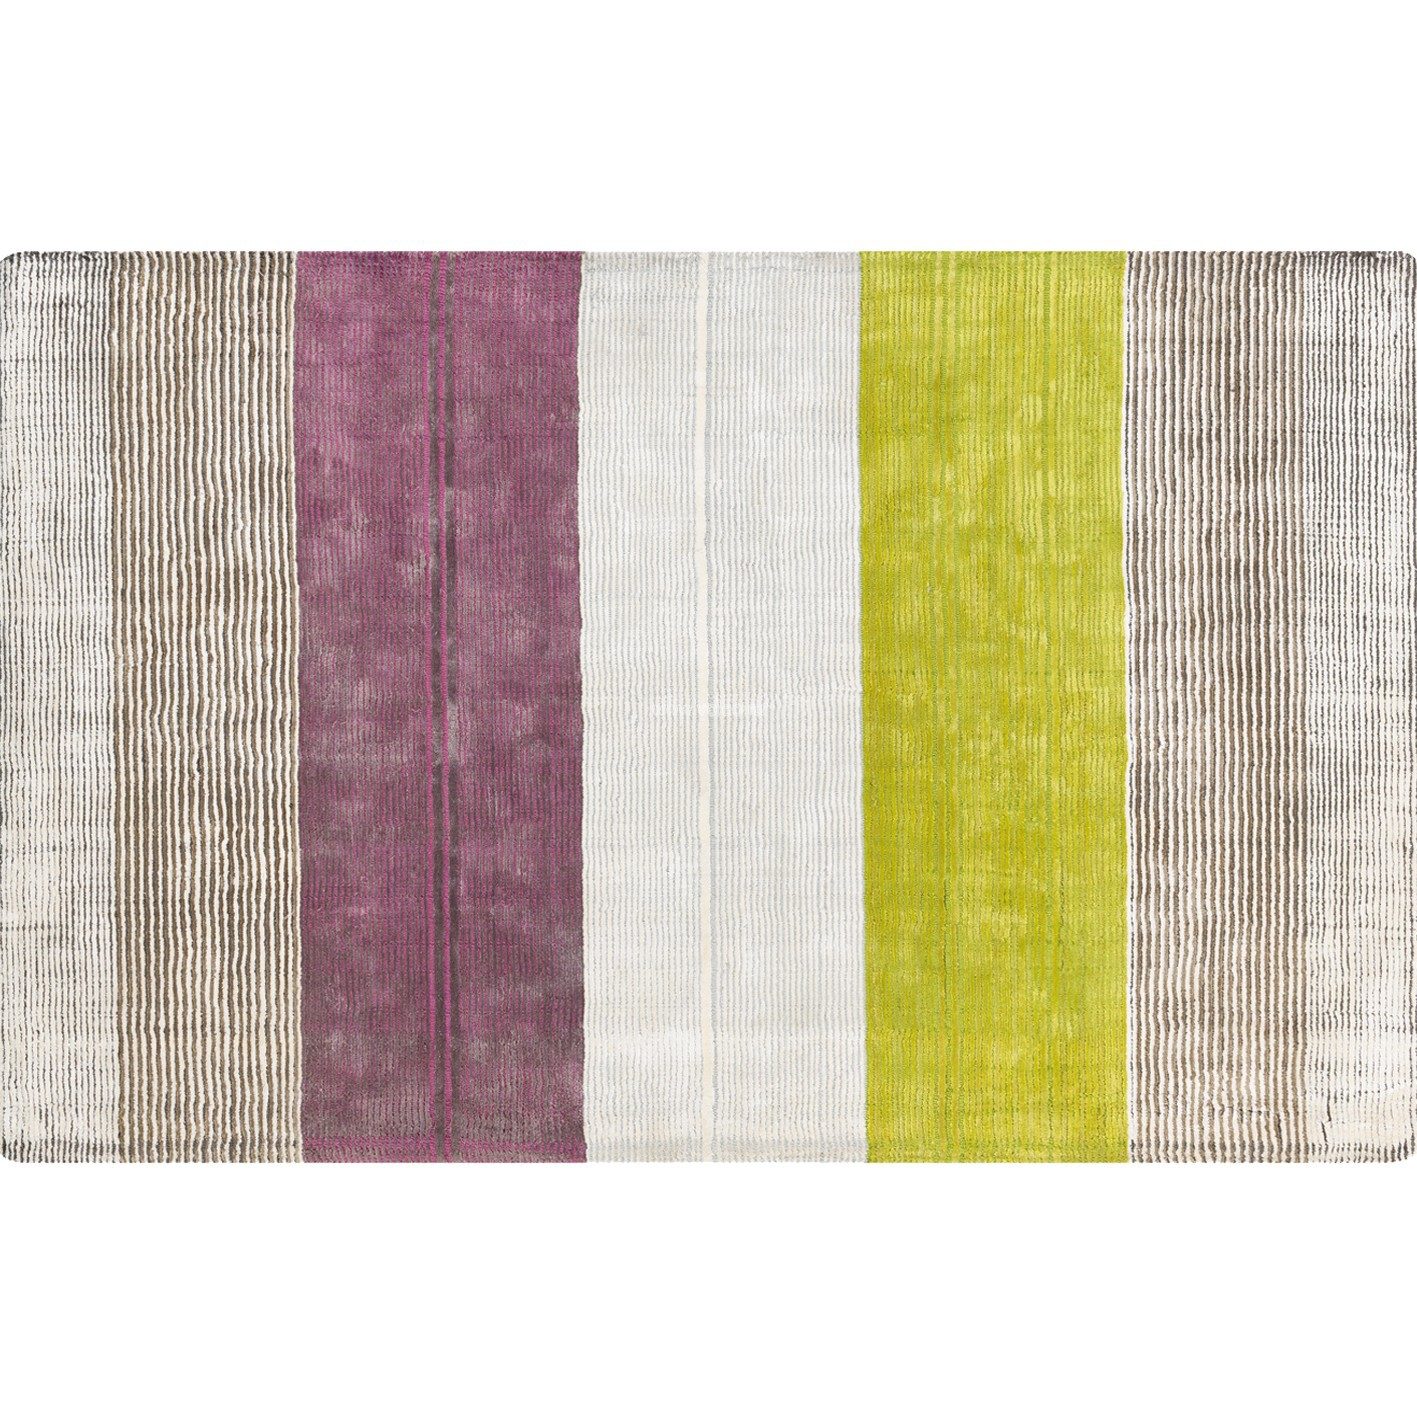 Ковер Designers Guild Rugs Delphi Heather DHRDG0032, интернет магазин Волео